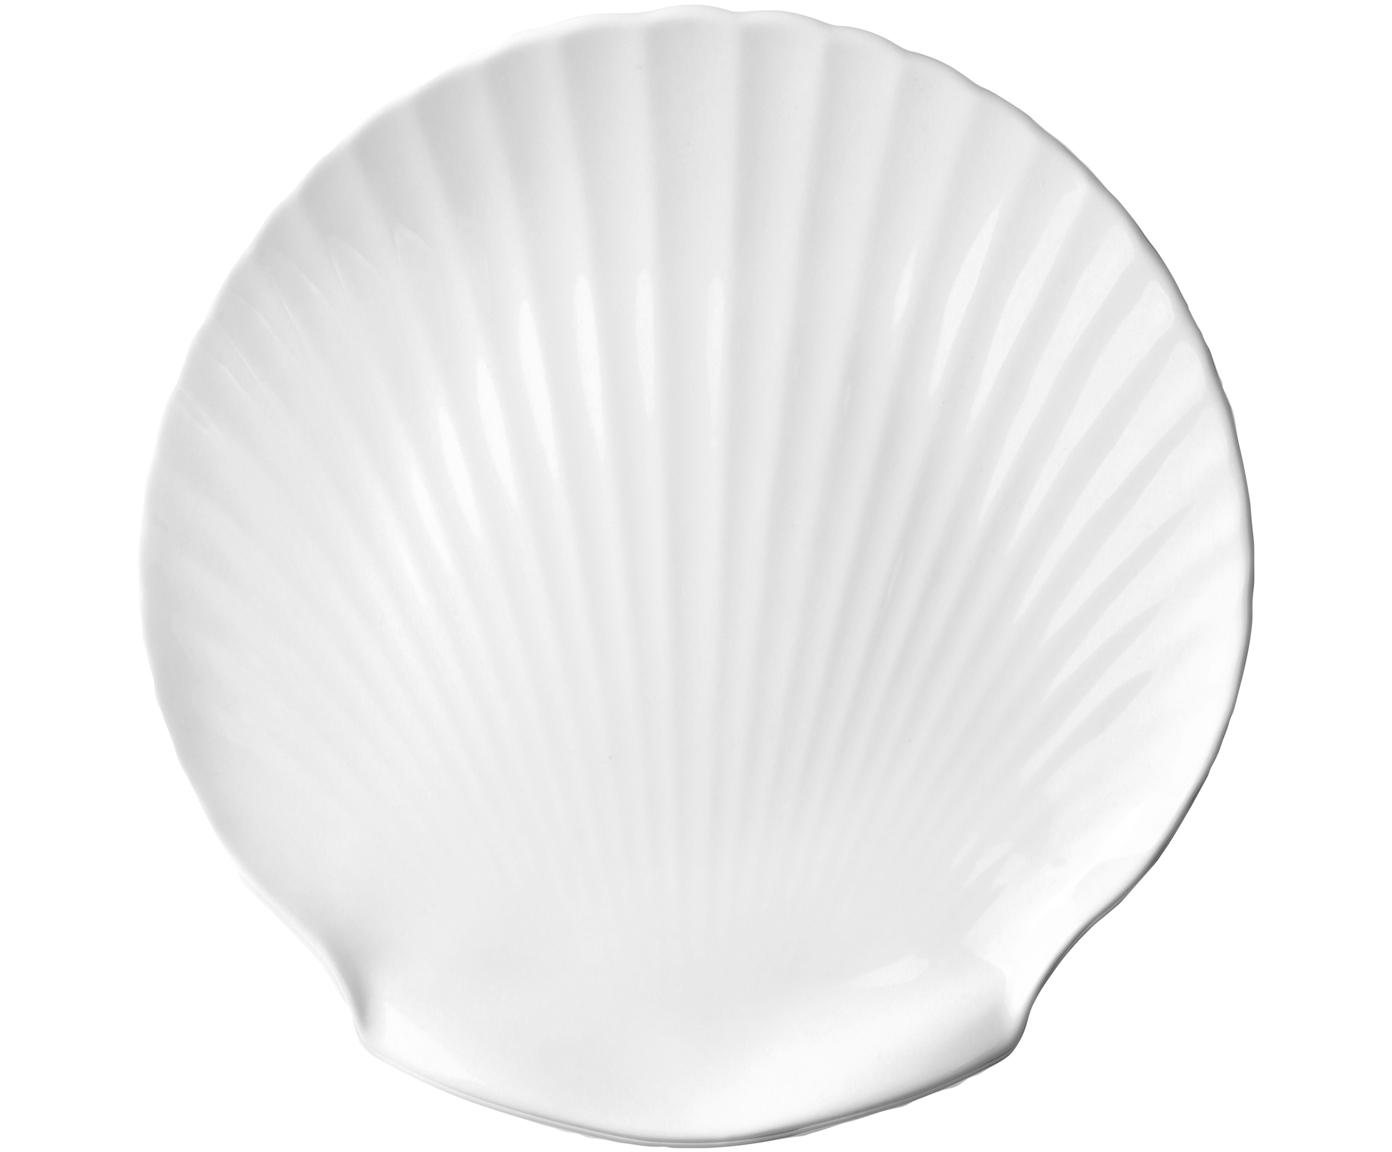 Fine Bone China Servierplatte Shell, Fine Bone China, Weiß, Ø 27 cm